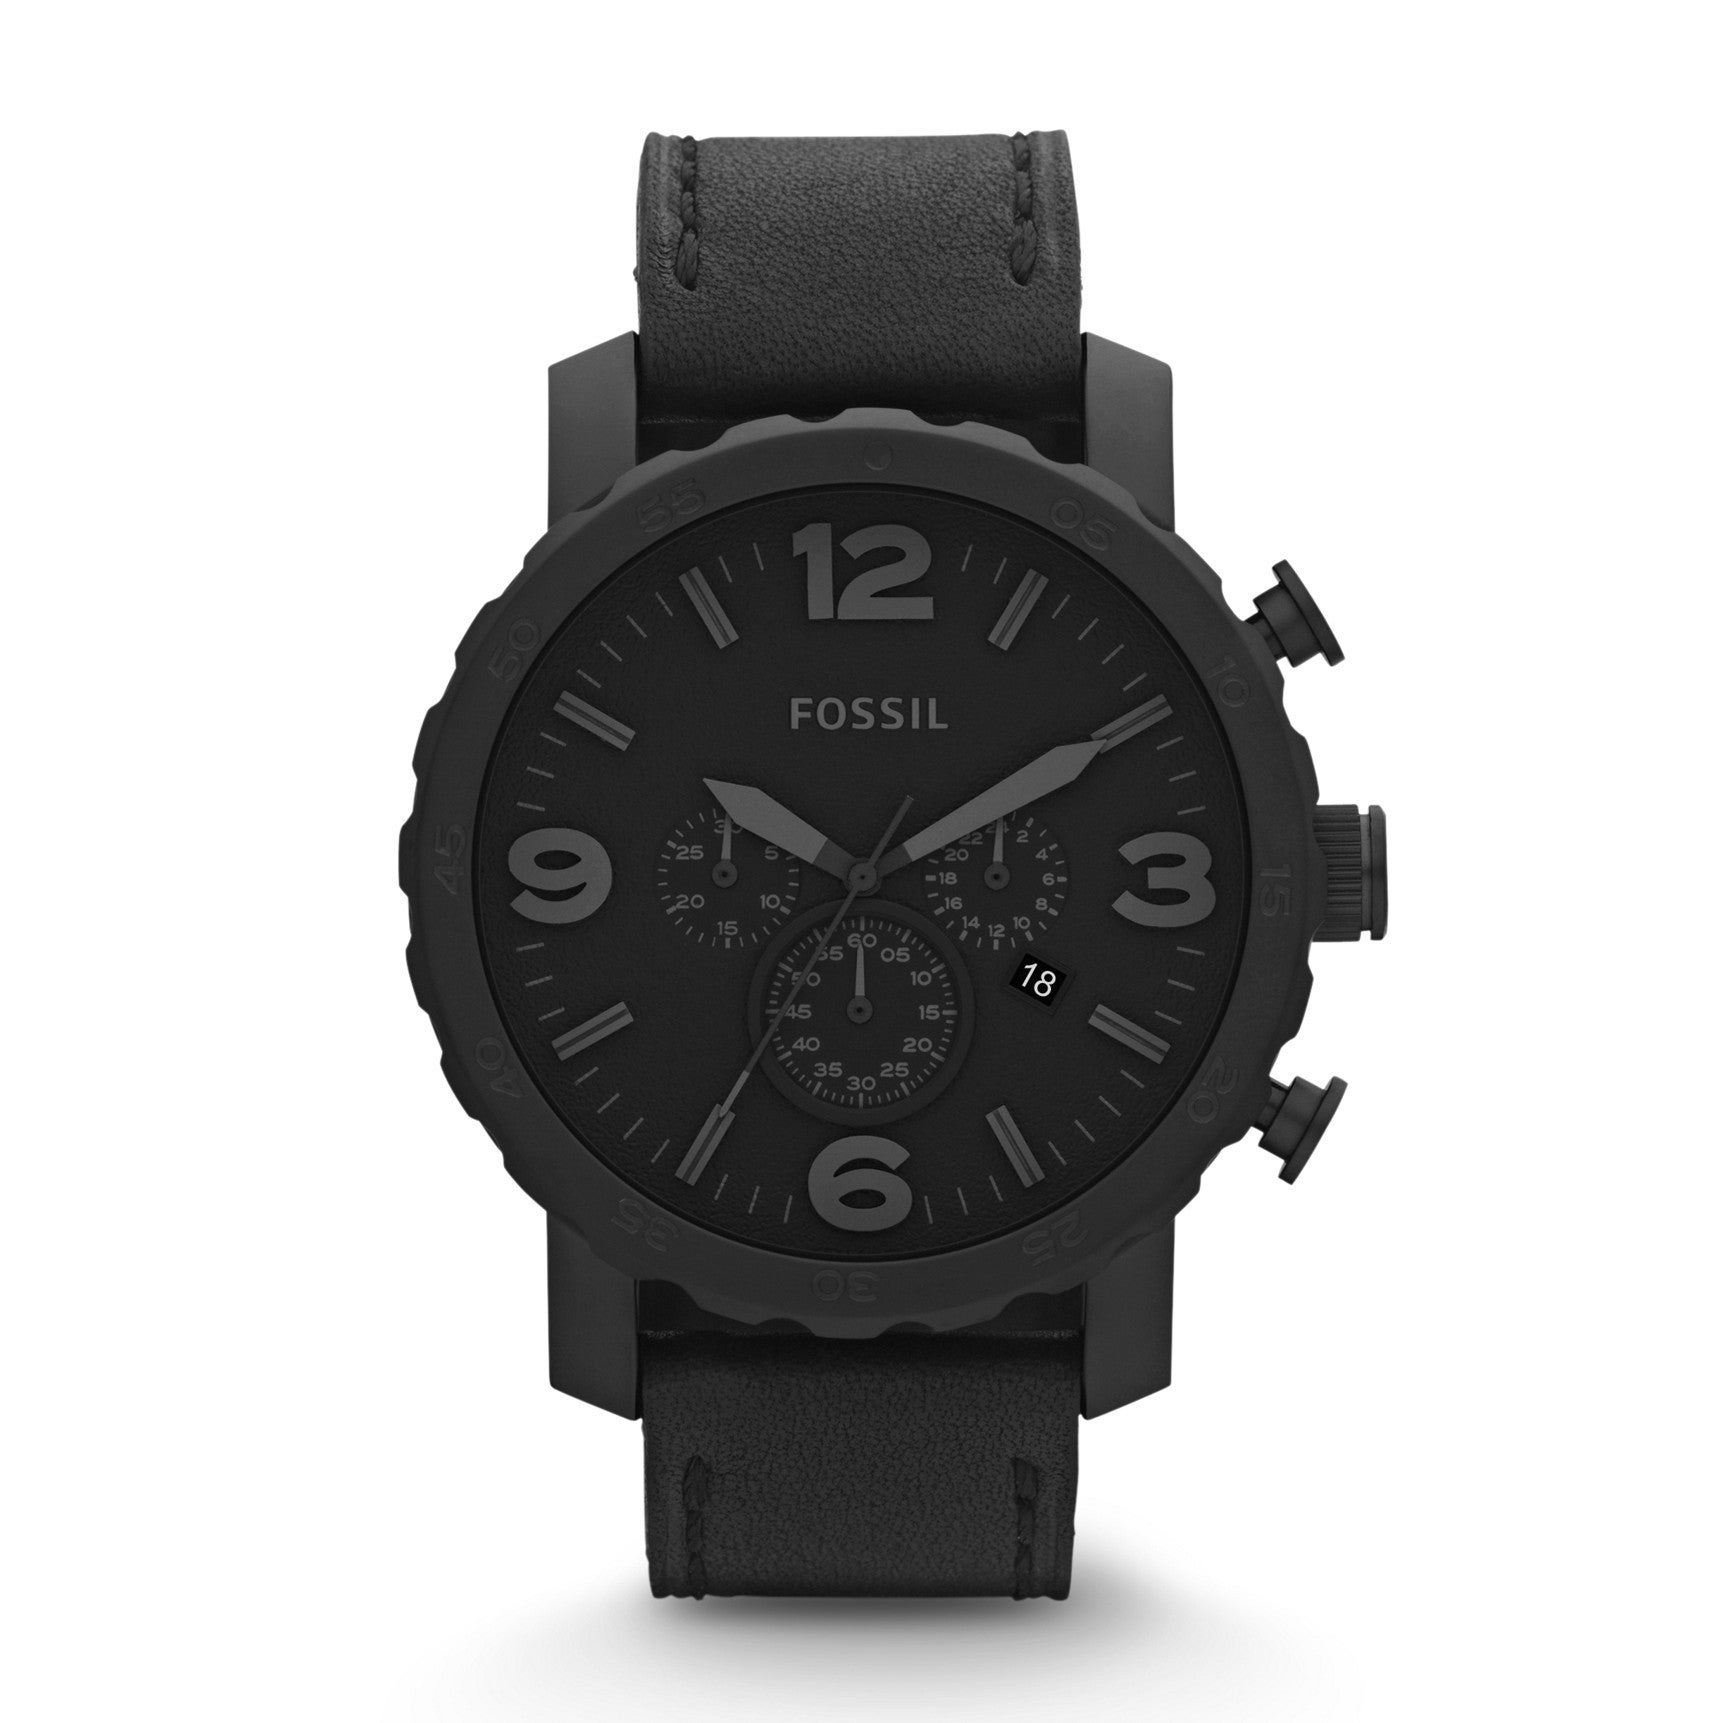 Fossil Men's JR1354 'Classic' Black Stainless Steel Watch...